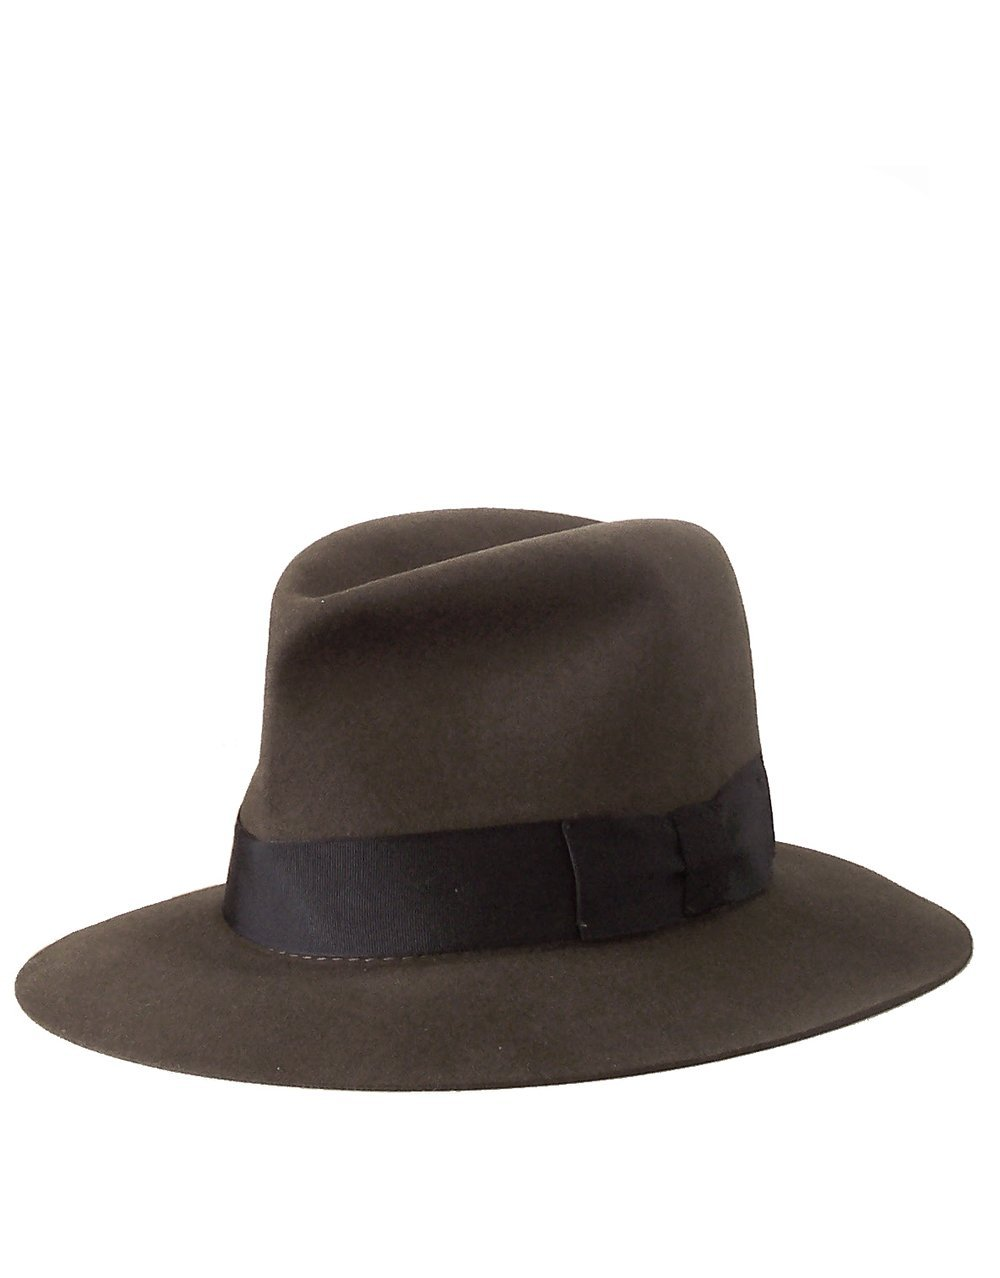 933ced5f3d5 Herbert Johnson Fur Felt Fedora Hat